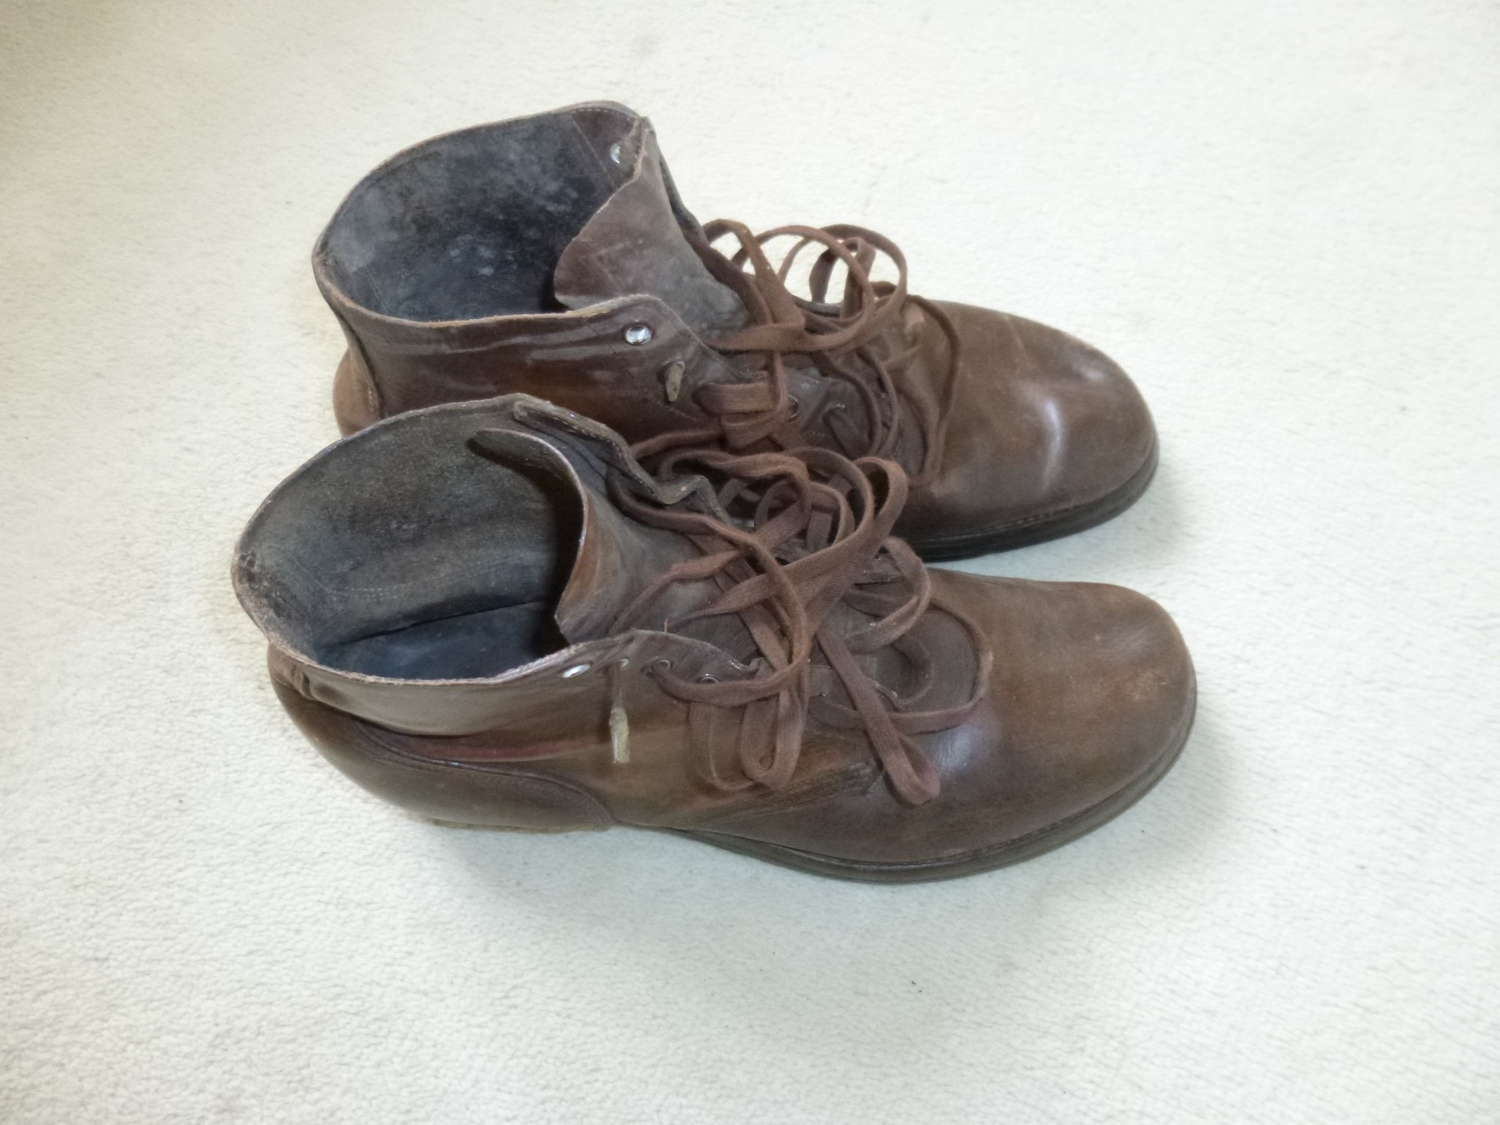 US army boots - size 10 1/2